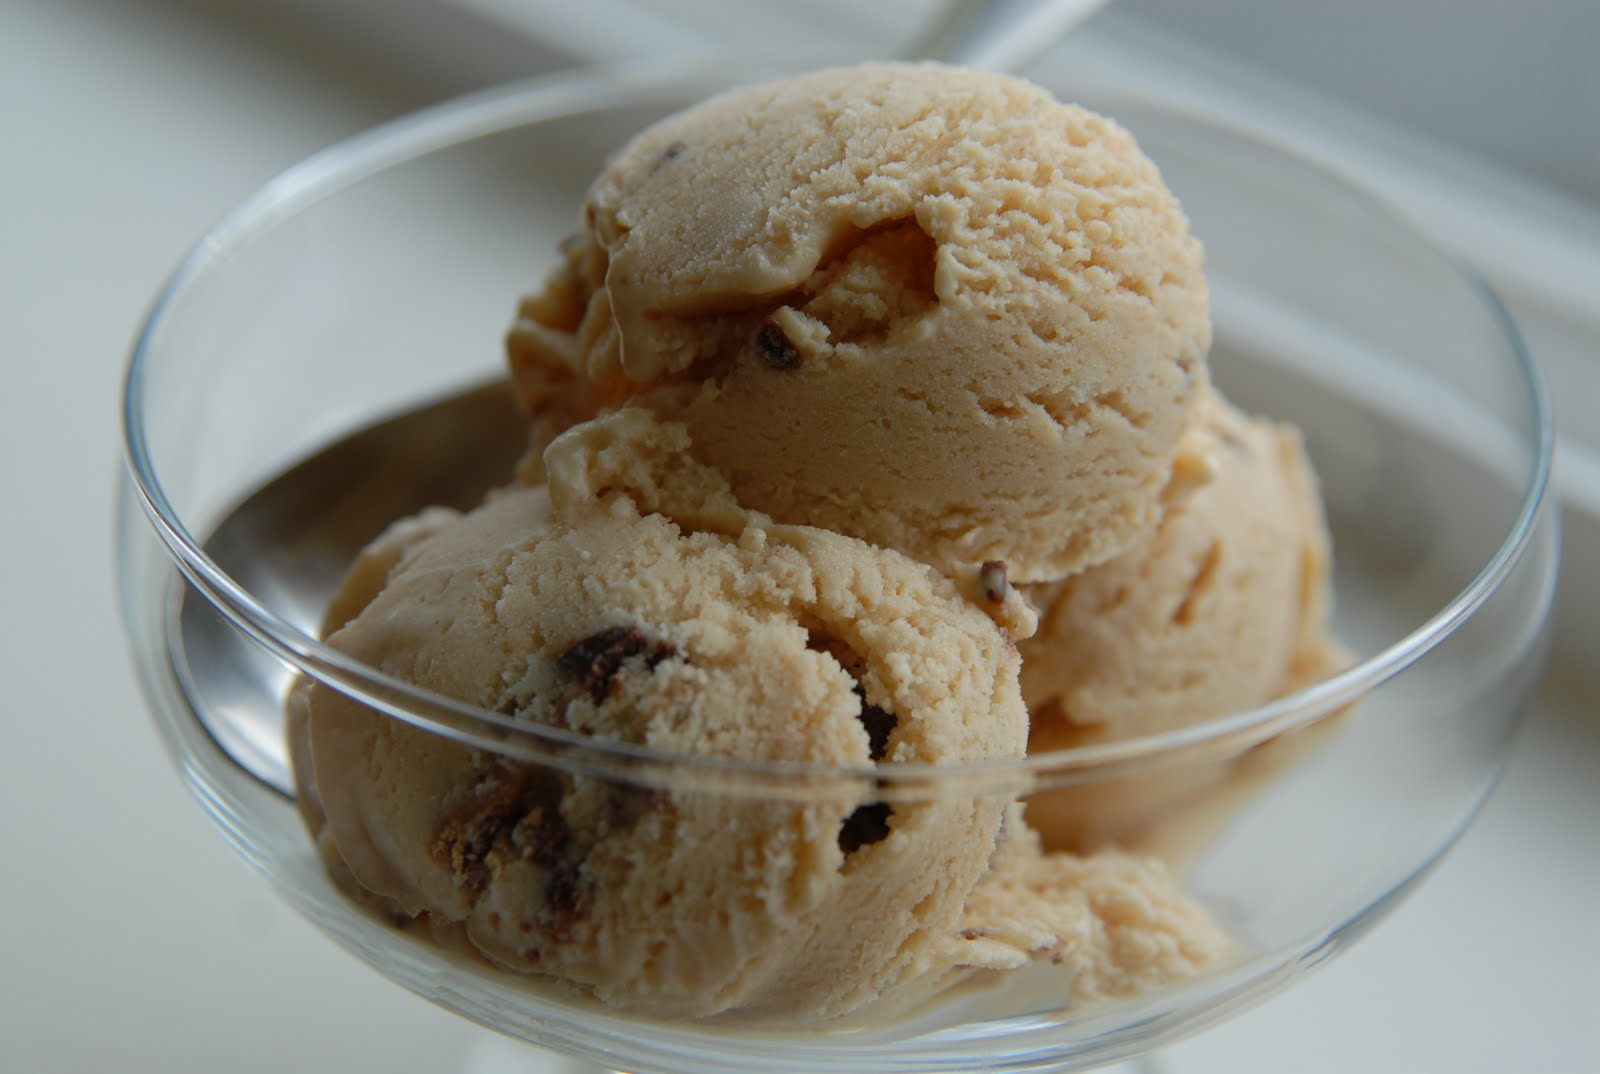 Foodie-bia: Peanut Butter Cup Ice Cream